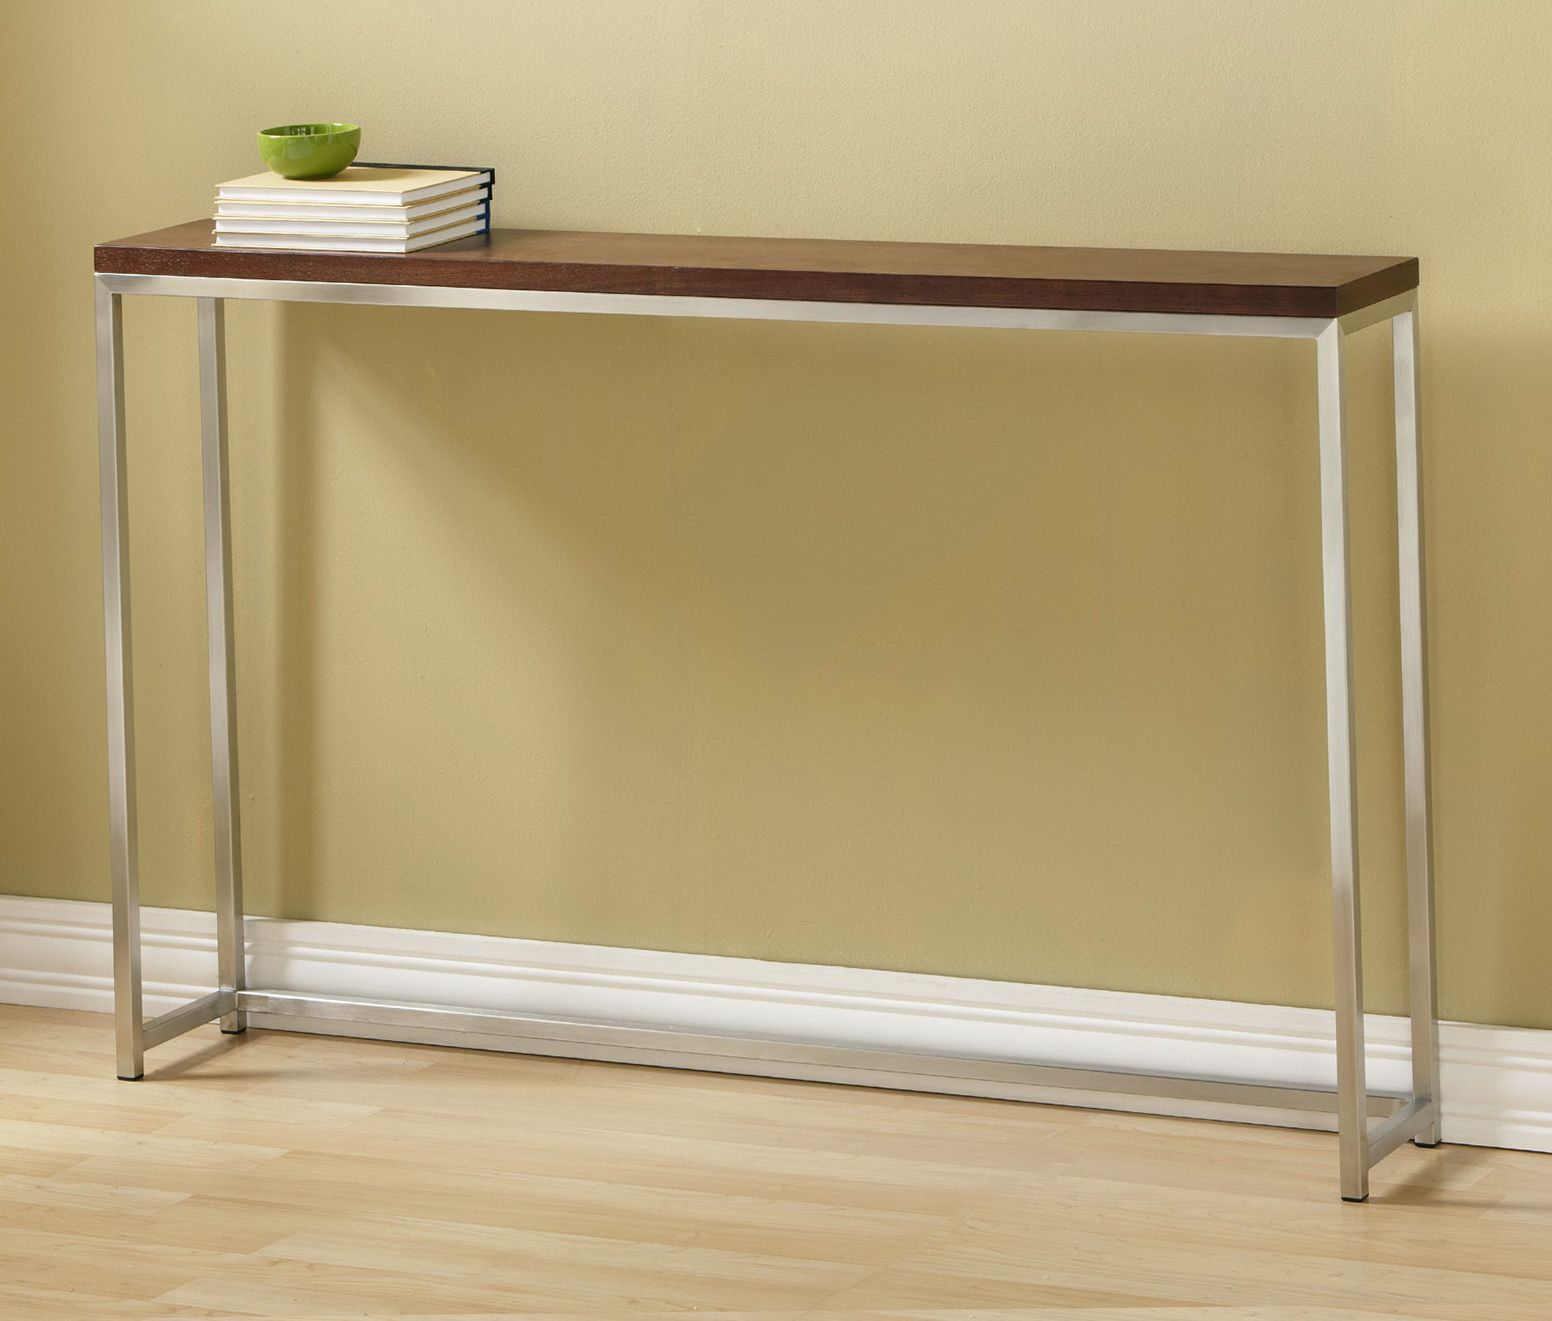 Amazing Tall Console Table With Storage 65 For Your Outdoor Sideboard